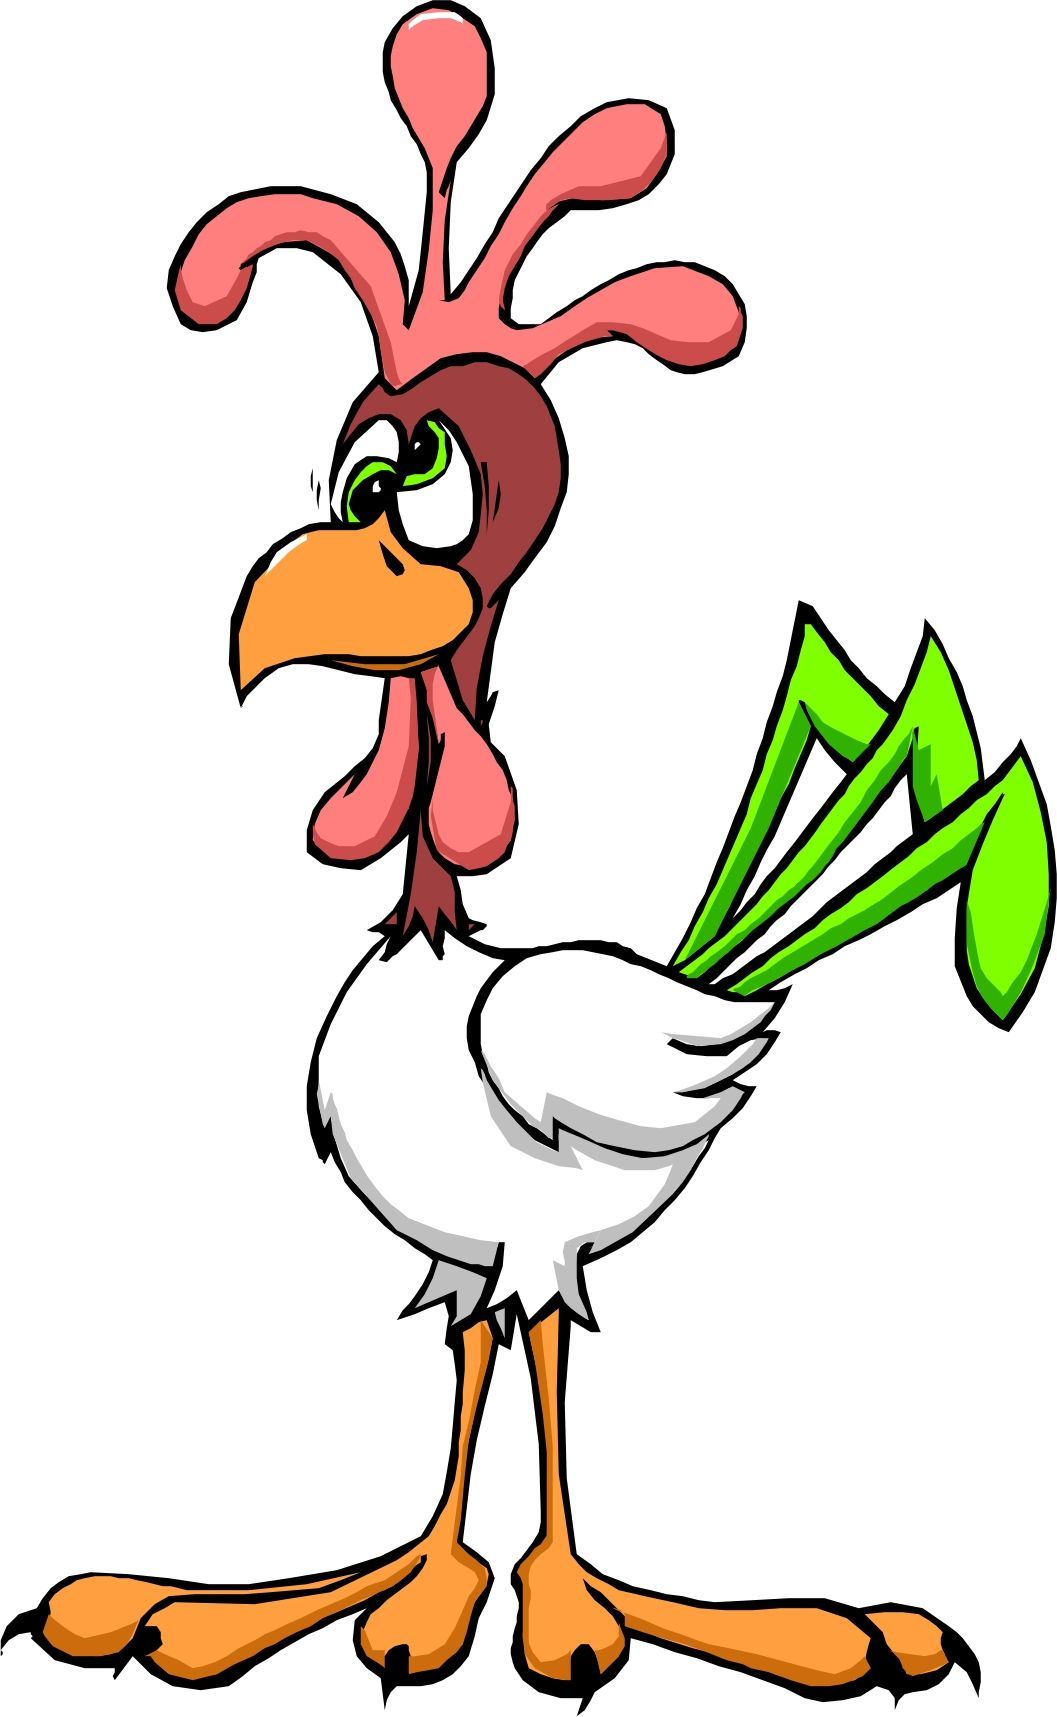 cartoon chickens clipart best backgrounds clipart images etc rh pinterest com clip art cartoon characters clipart cartoon fish